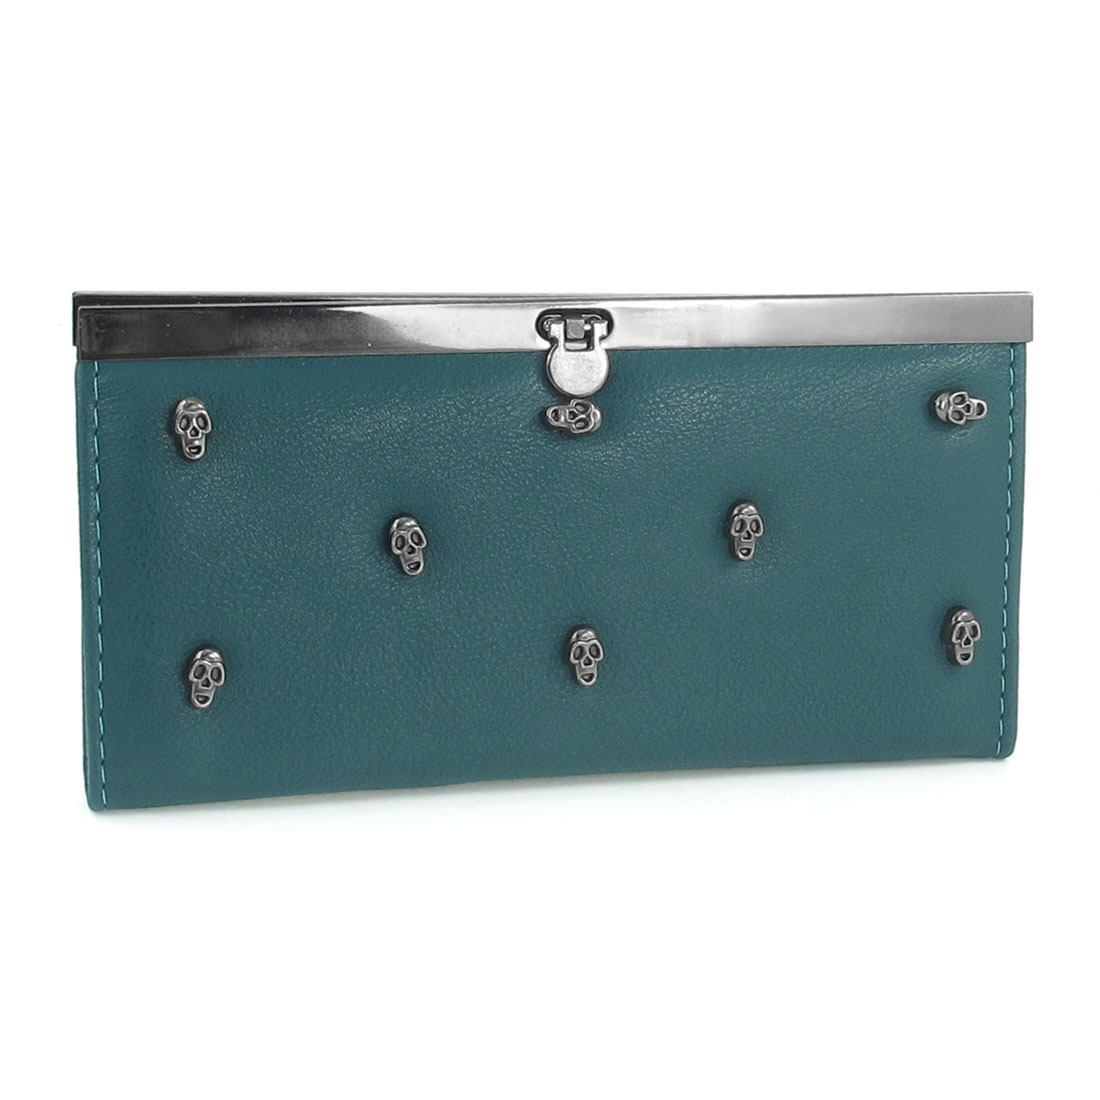 Lady Faux Leather Skull Decoration 4-Compartment Wallet Teal Green